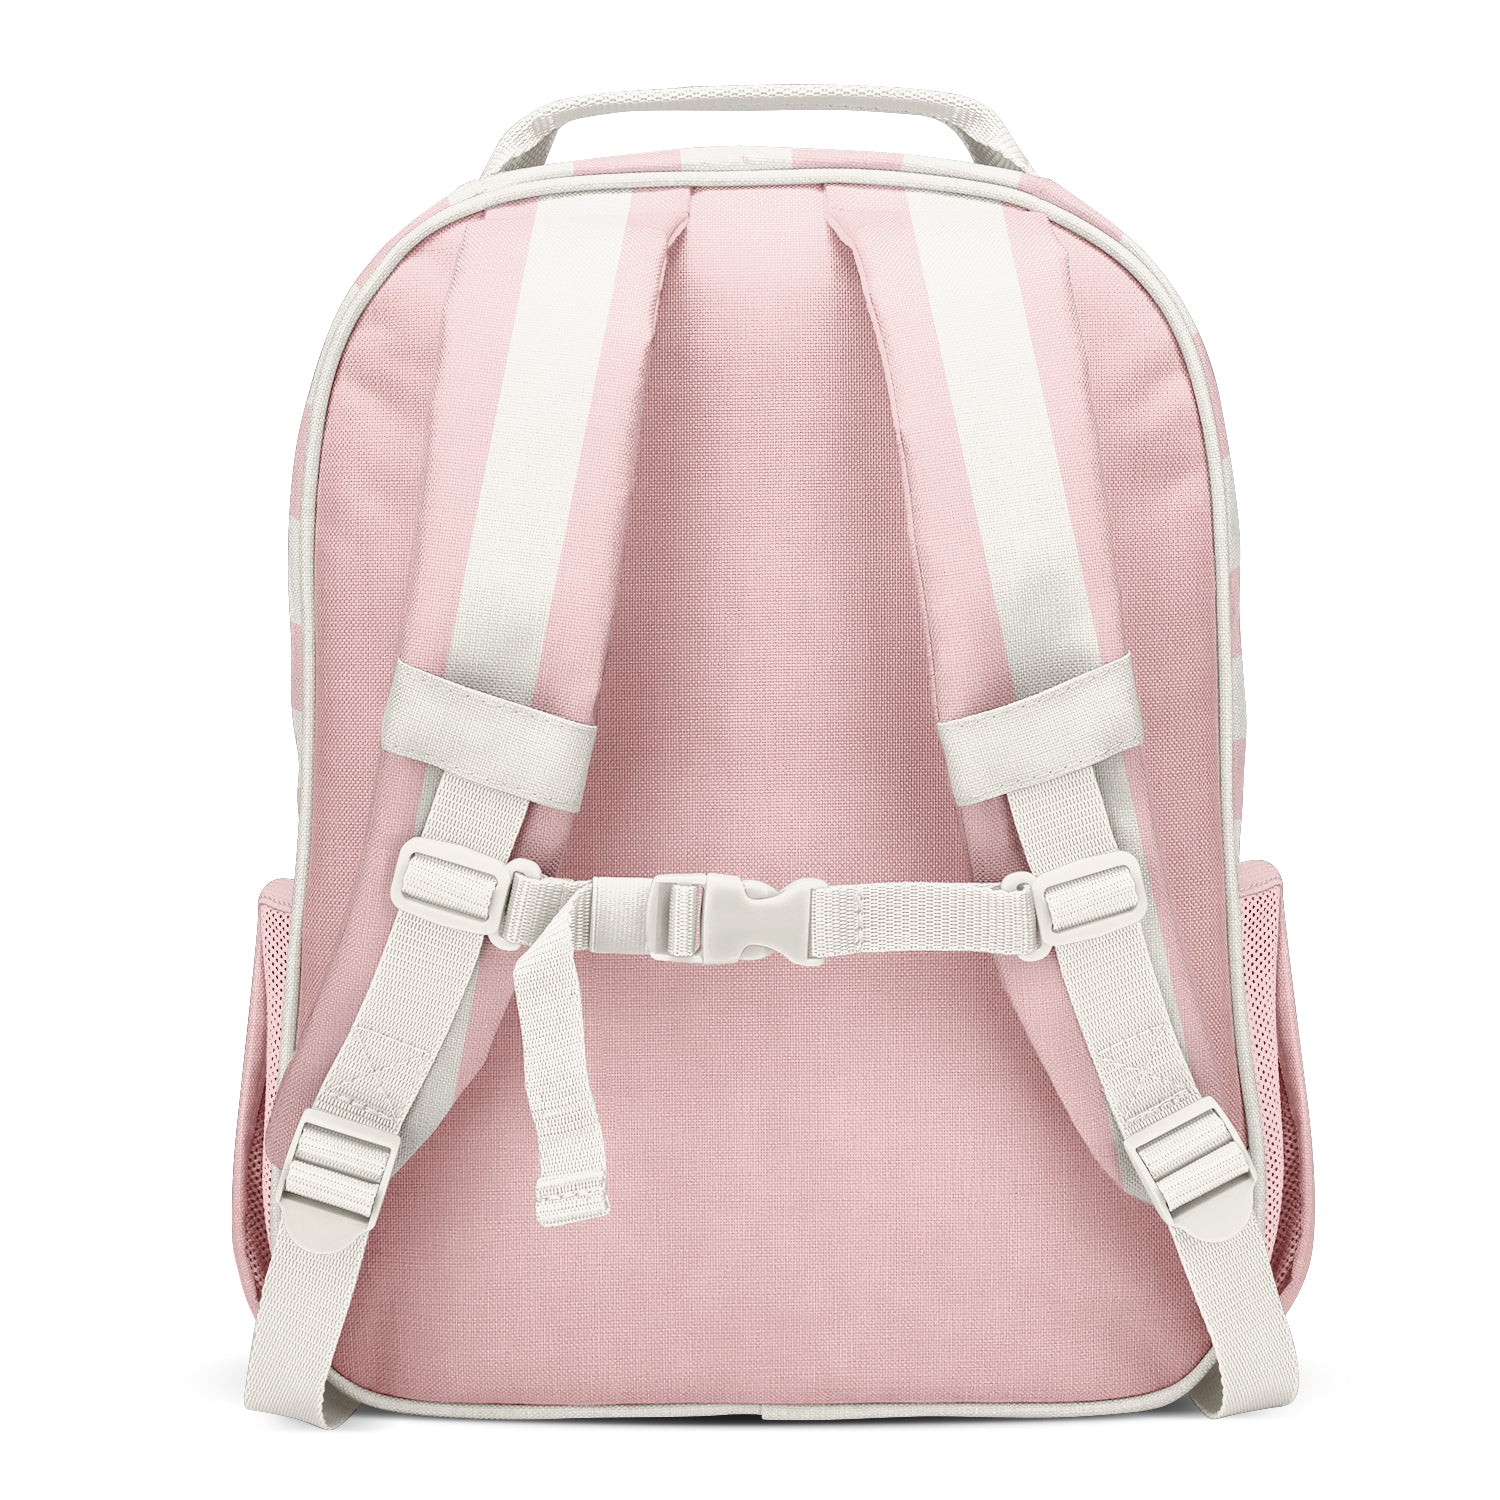 Kids Fletcher Backpack - Just Pink Candy Stripes